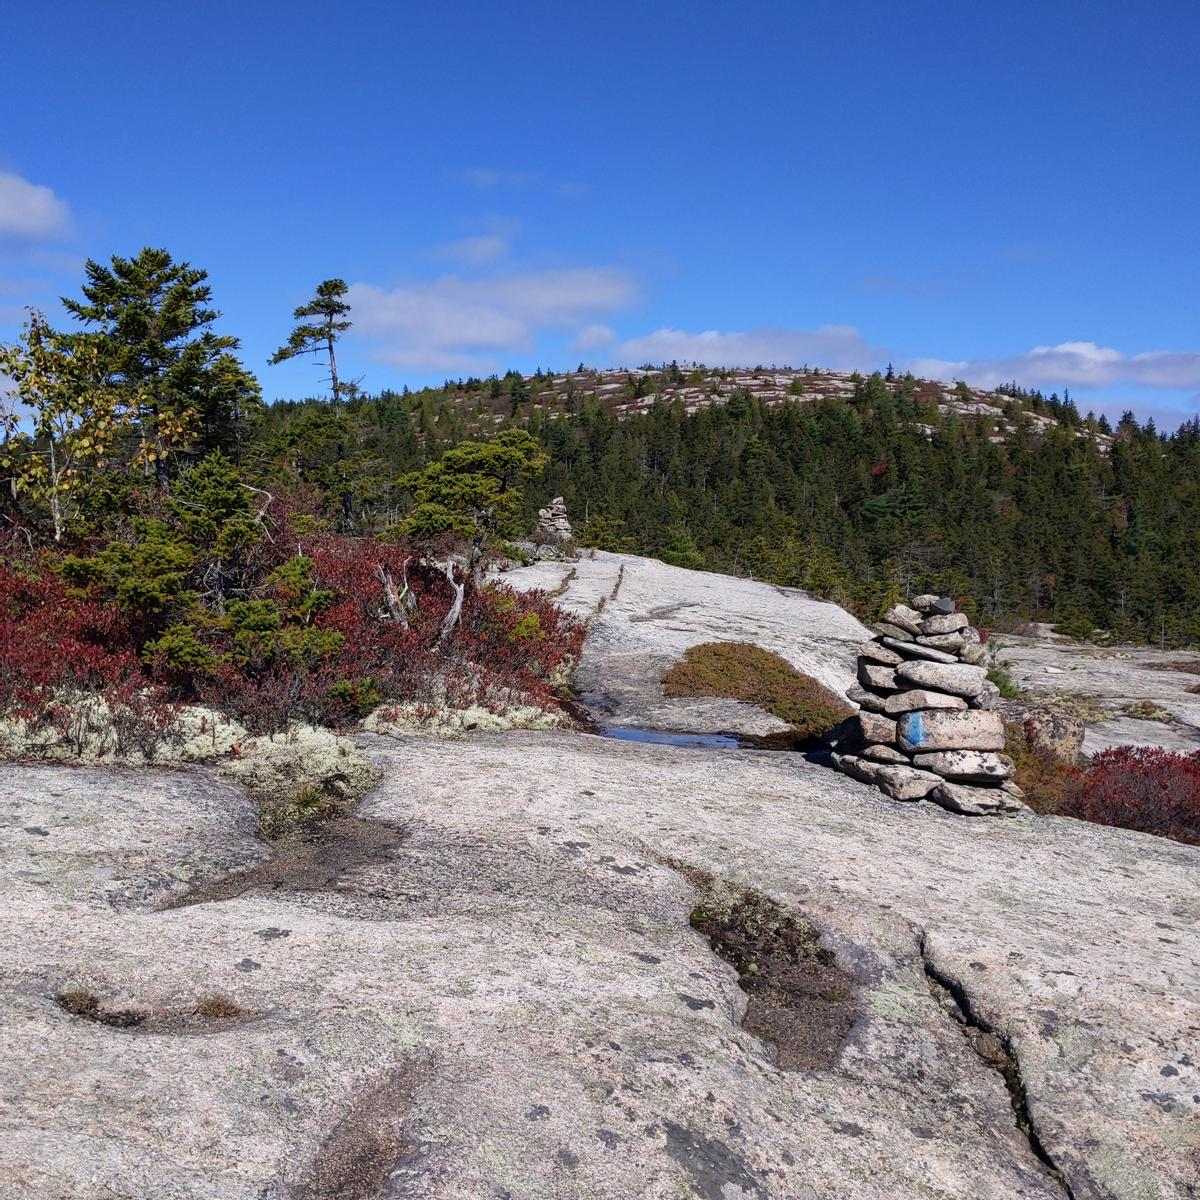 A rock cairn indicates the direction of the trail as it passes over a rock ledge